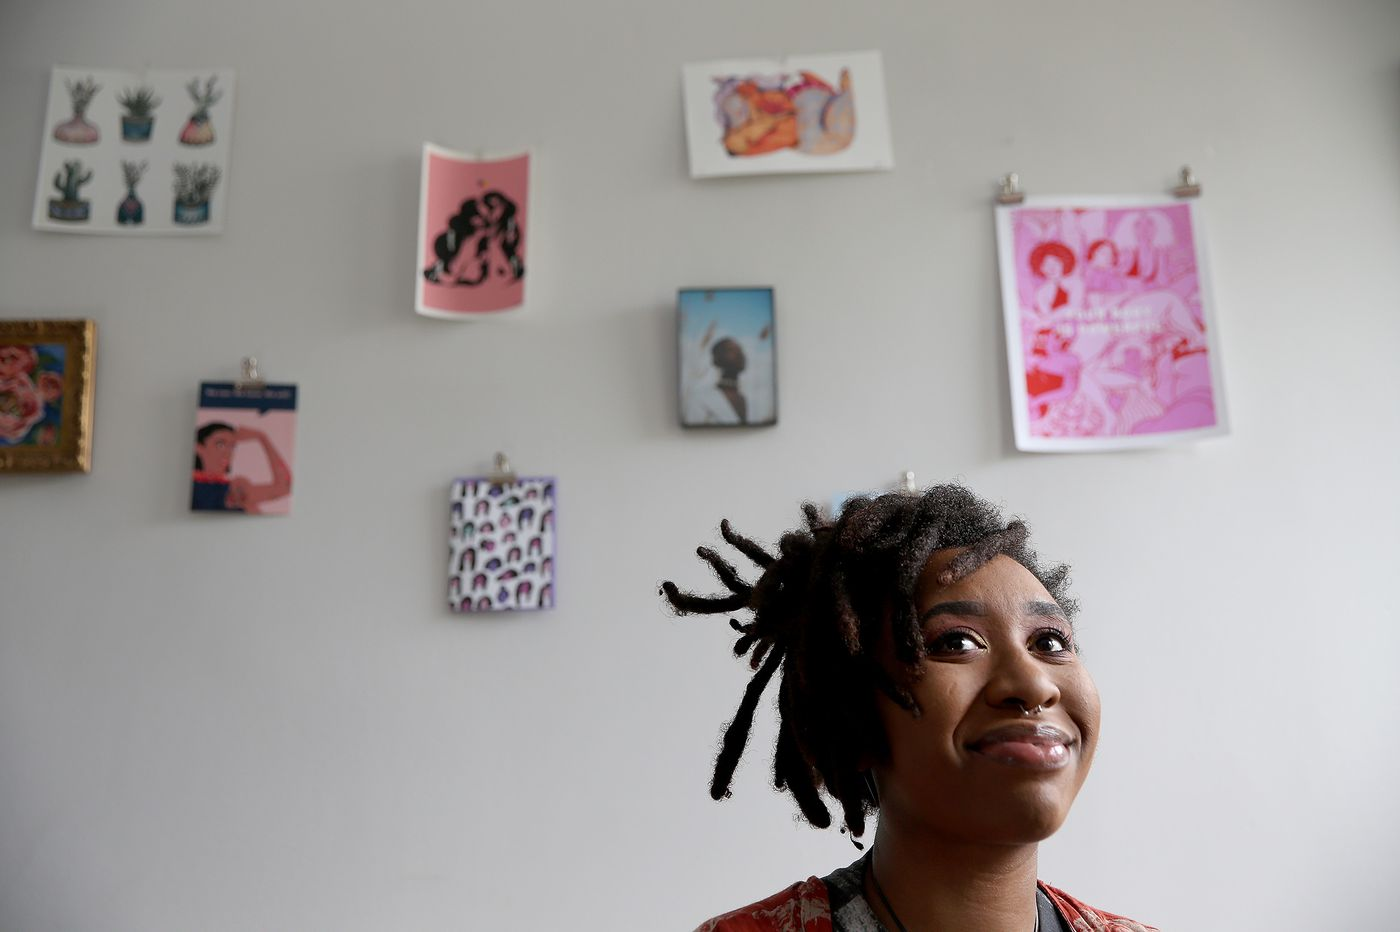 Meet UArts' Loveis Wise, 23, who just illustrated the cover of the New Yorker